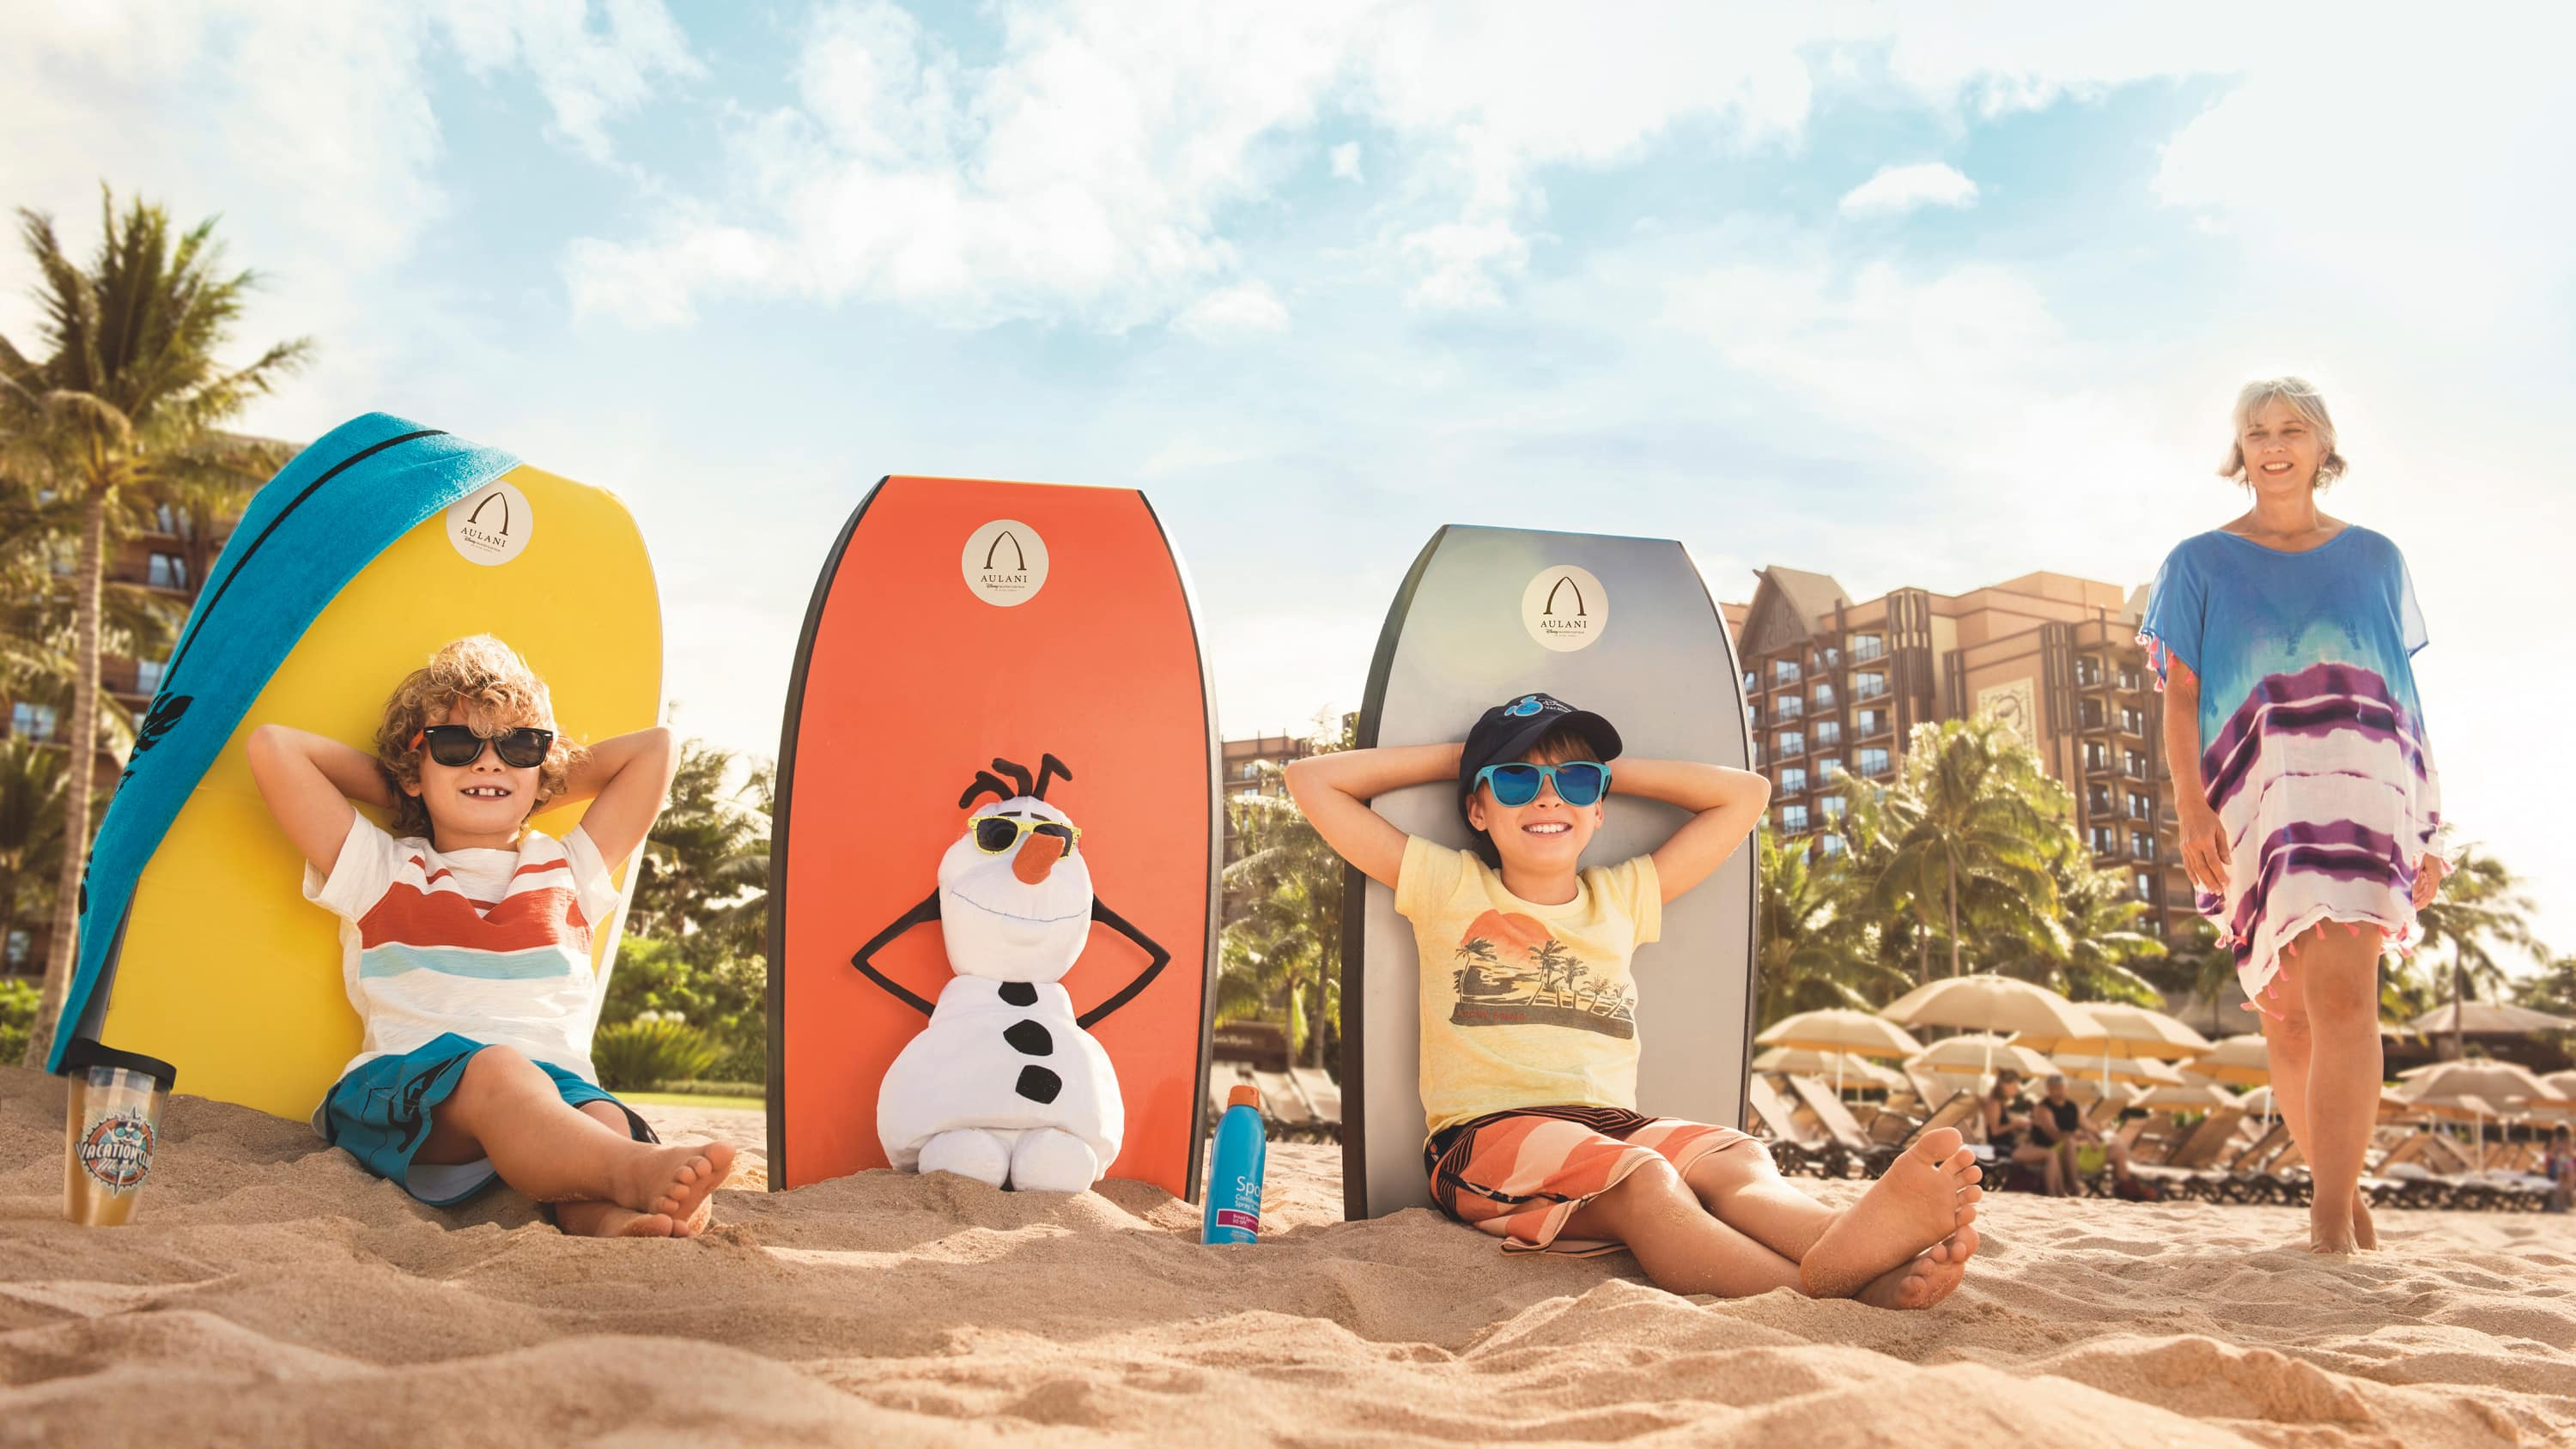 Two boys sit on the beach with Olaf the snowman, while their grandmother stands nearby